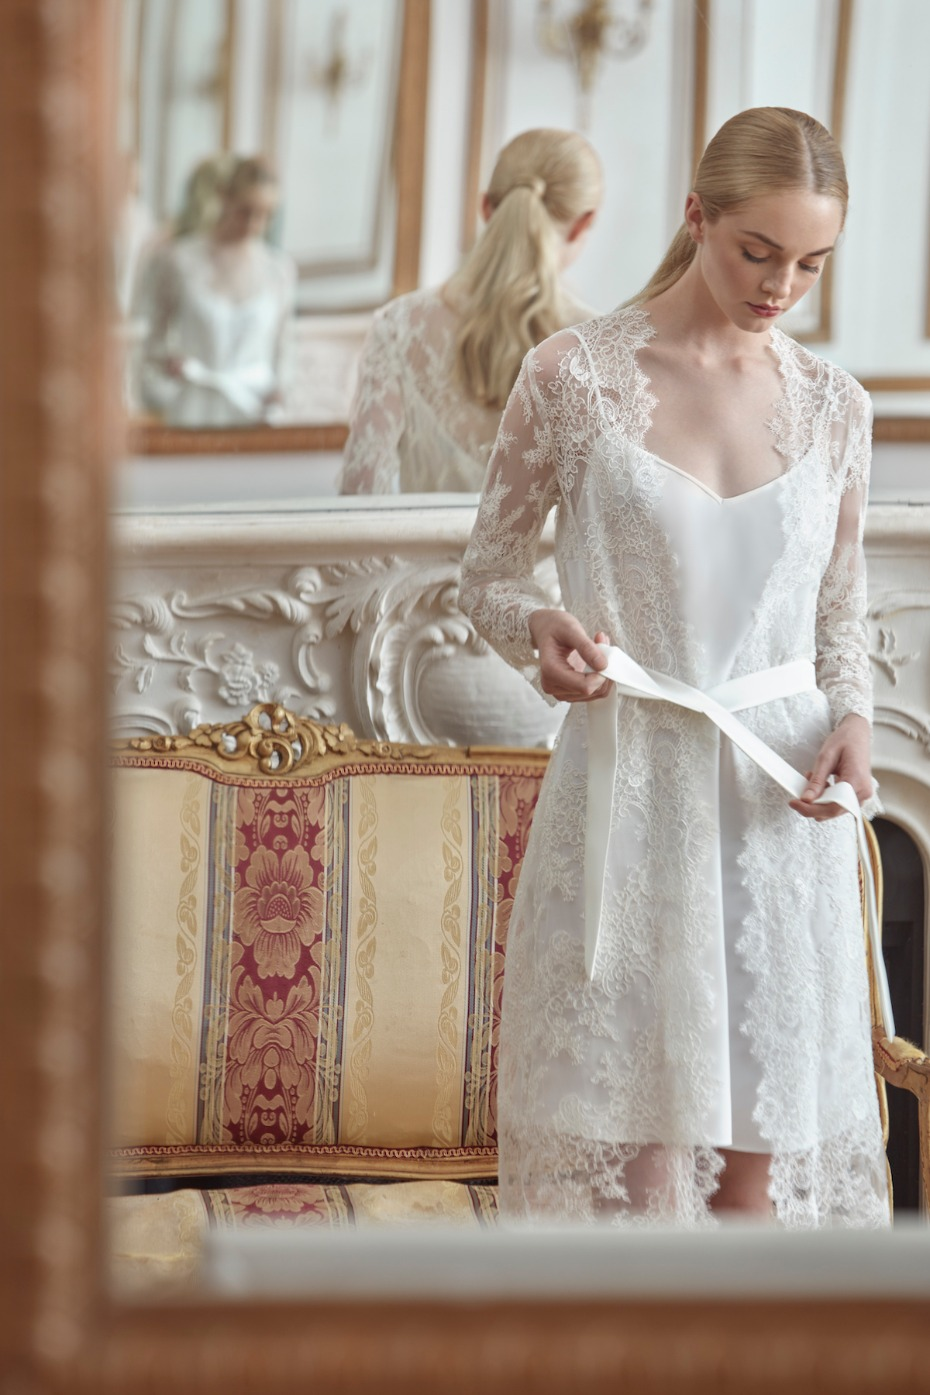 Sareh Nouri Just Upped the Bridal Getting-Ready Game In a Major Way